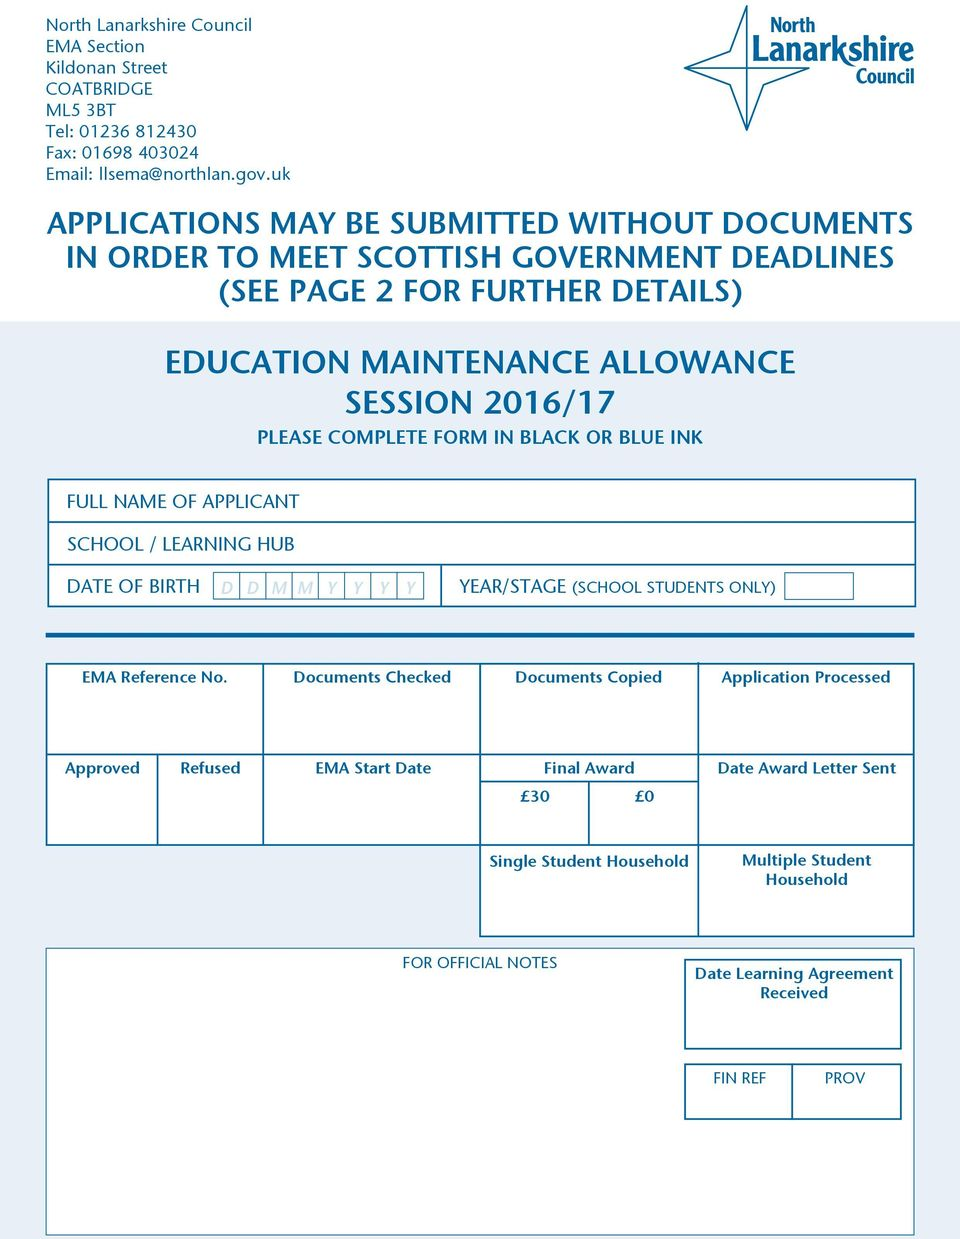 PLEASE COMPLETE FORM IN BLACK OR BLUE INK FULL NAME OF APPLICANT SCHOOL / LEARNING HUB DATE OF BIRTH D D M M Y Y Y Y YEAR/STAGE (SCHOOL STUDENTS ONLY) EMA Reference No.